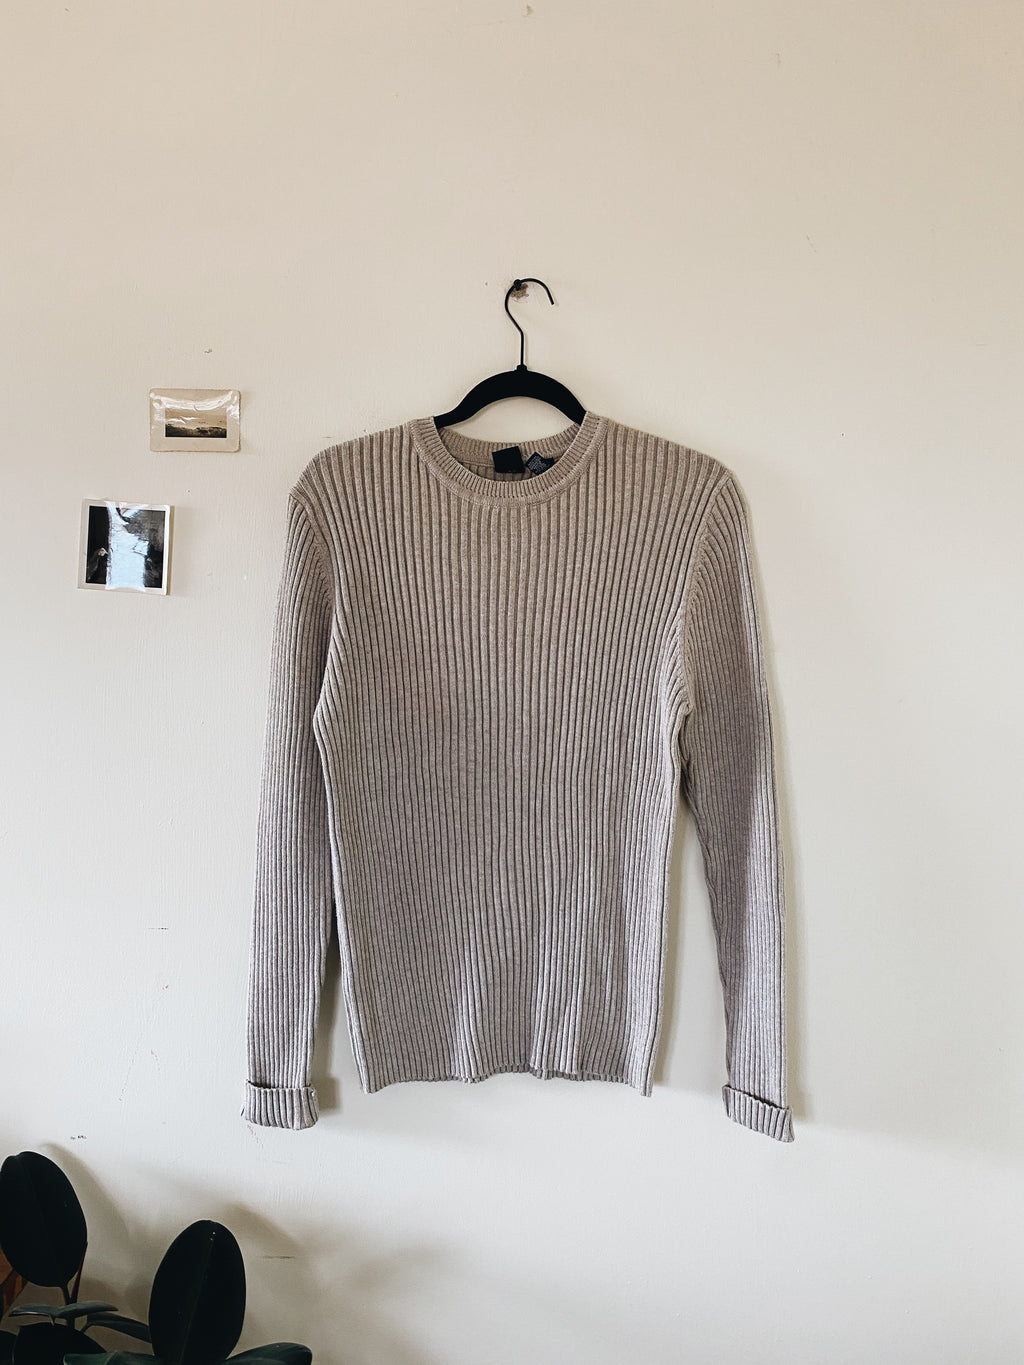 Vintage Ribbed Sweater- Size S/M